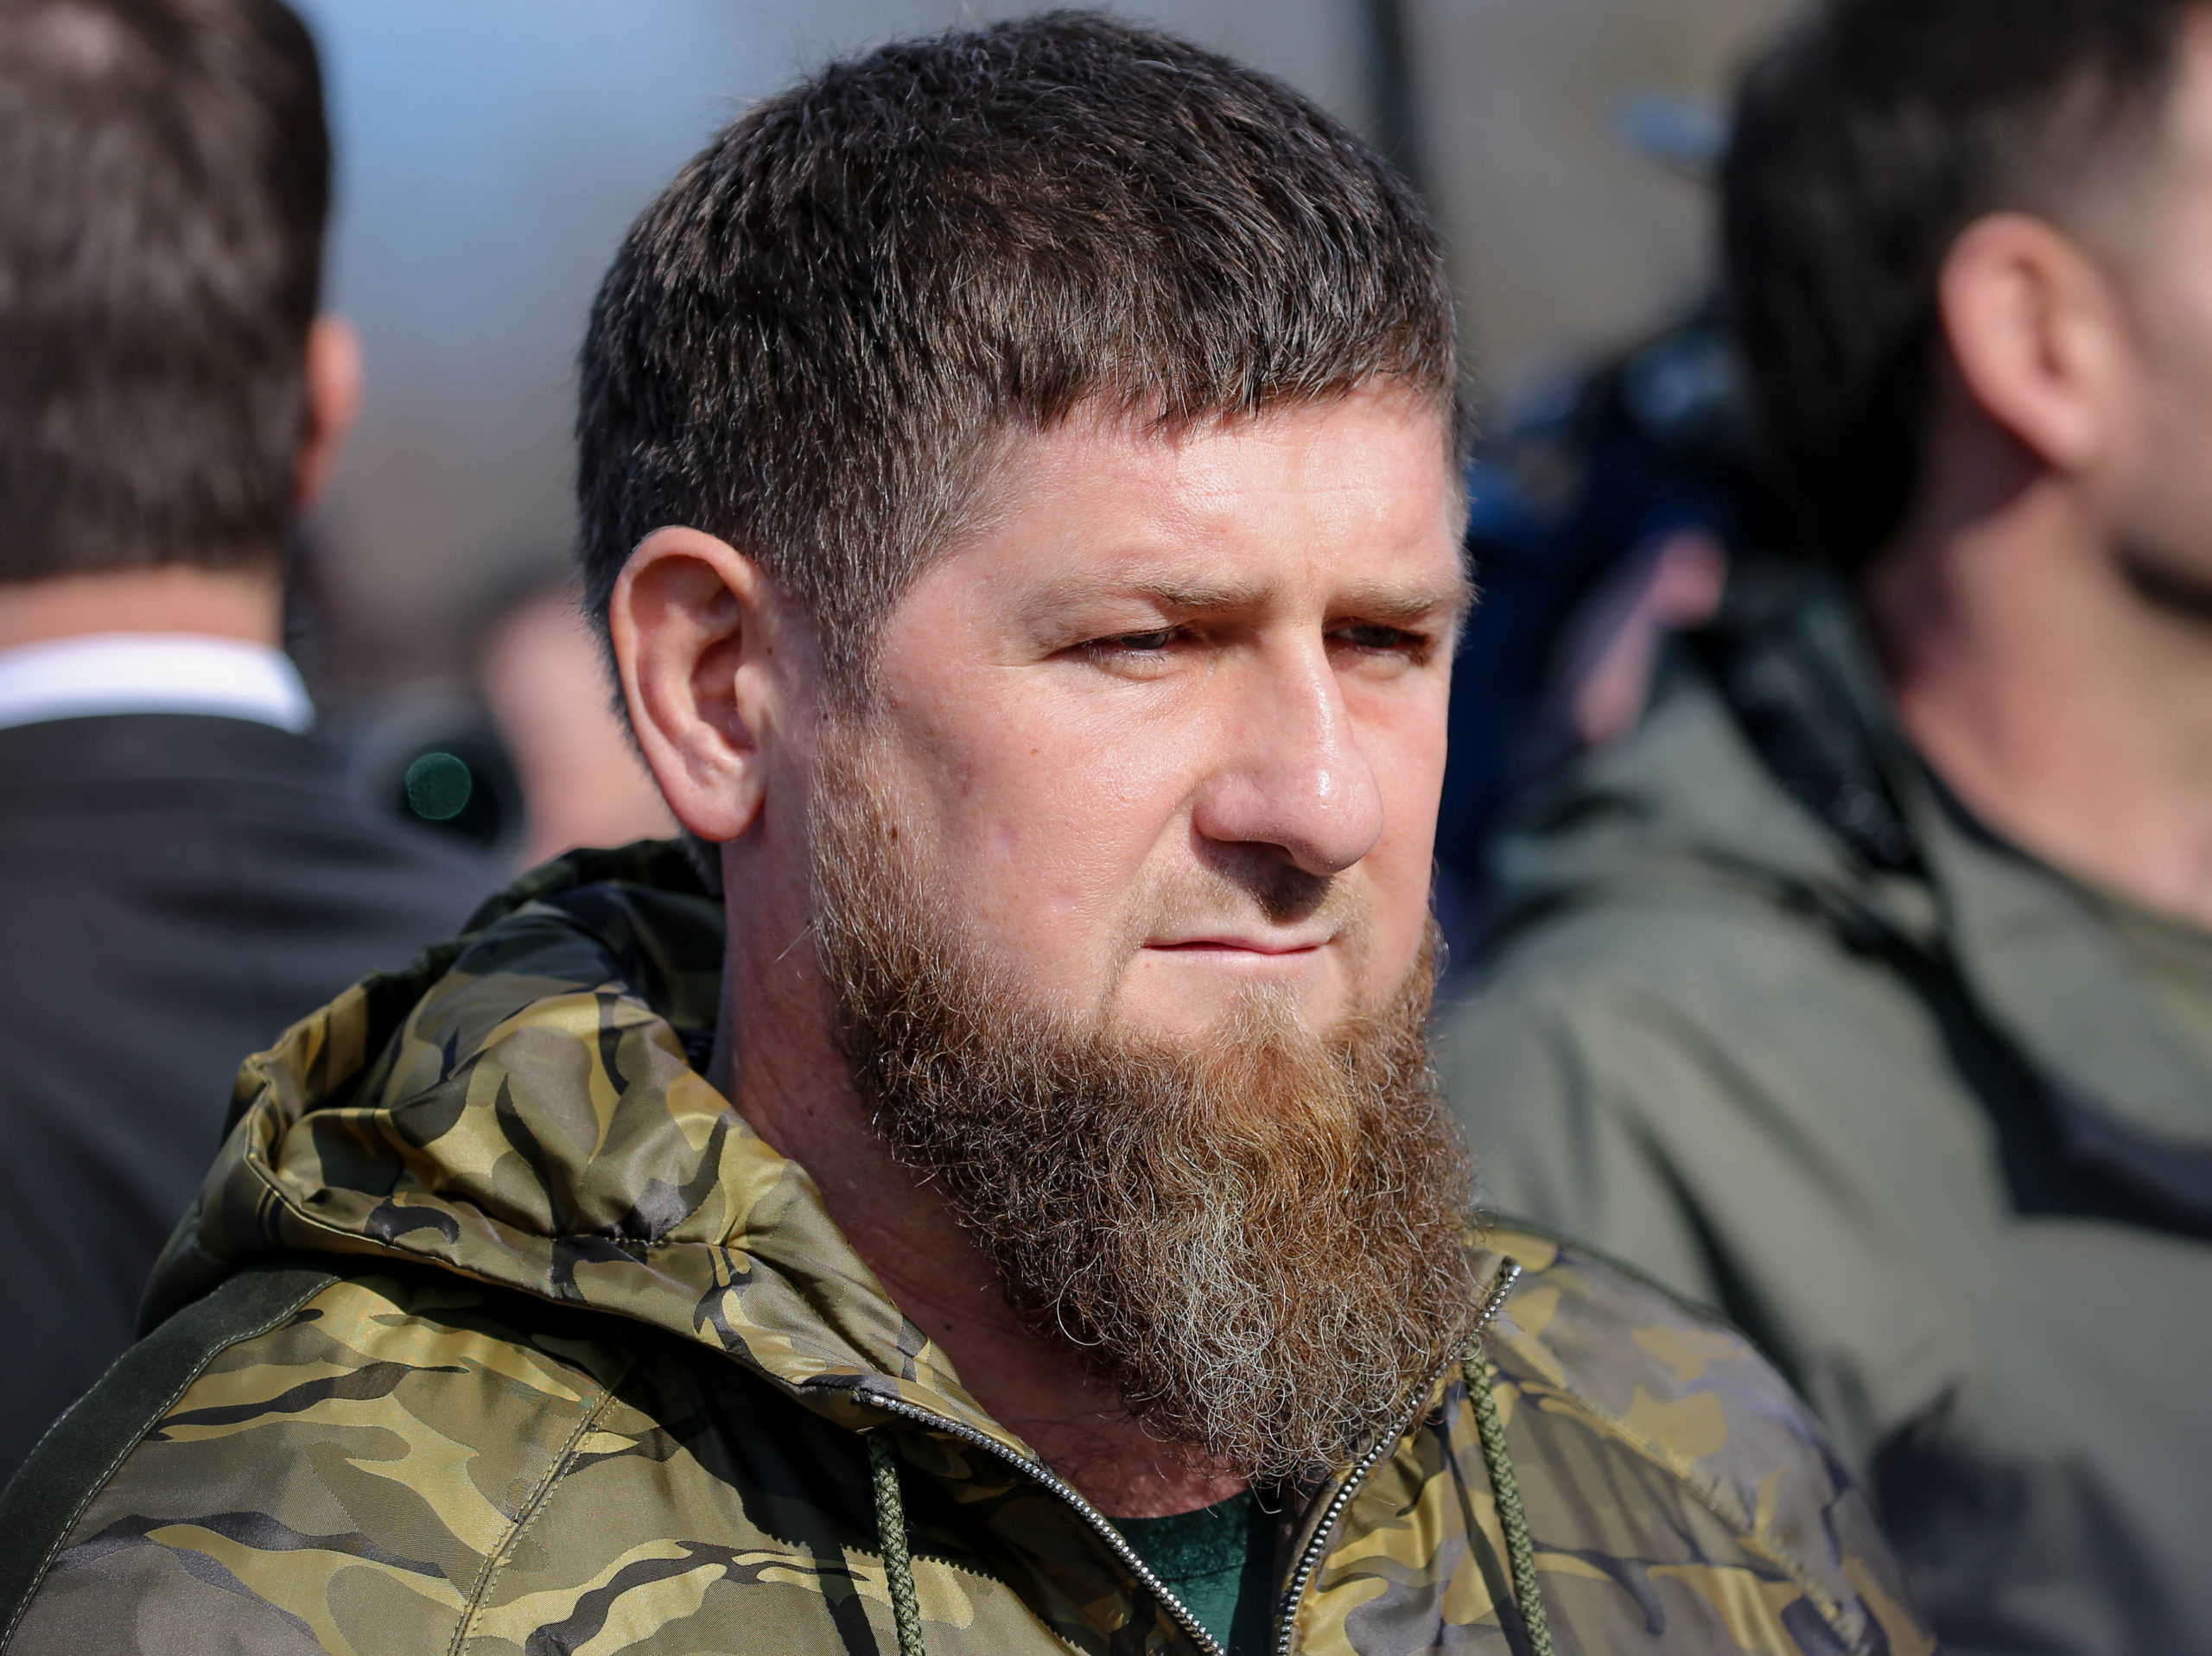 Chechnya's gay purge tyrant – who said COVID-19 patients 'should be executed' – mounts pathetic defence after 'hospitalisation'